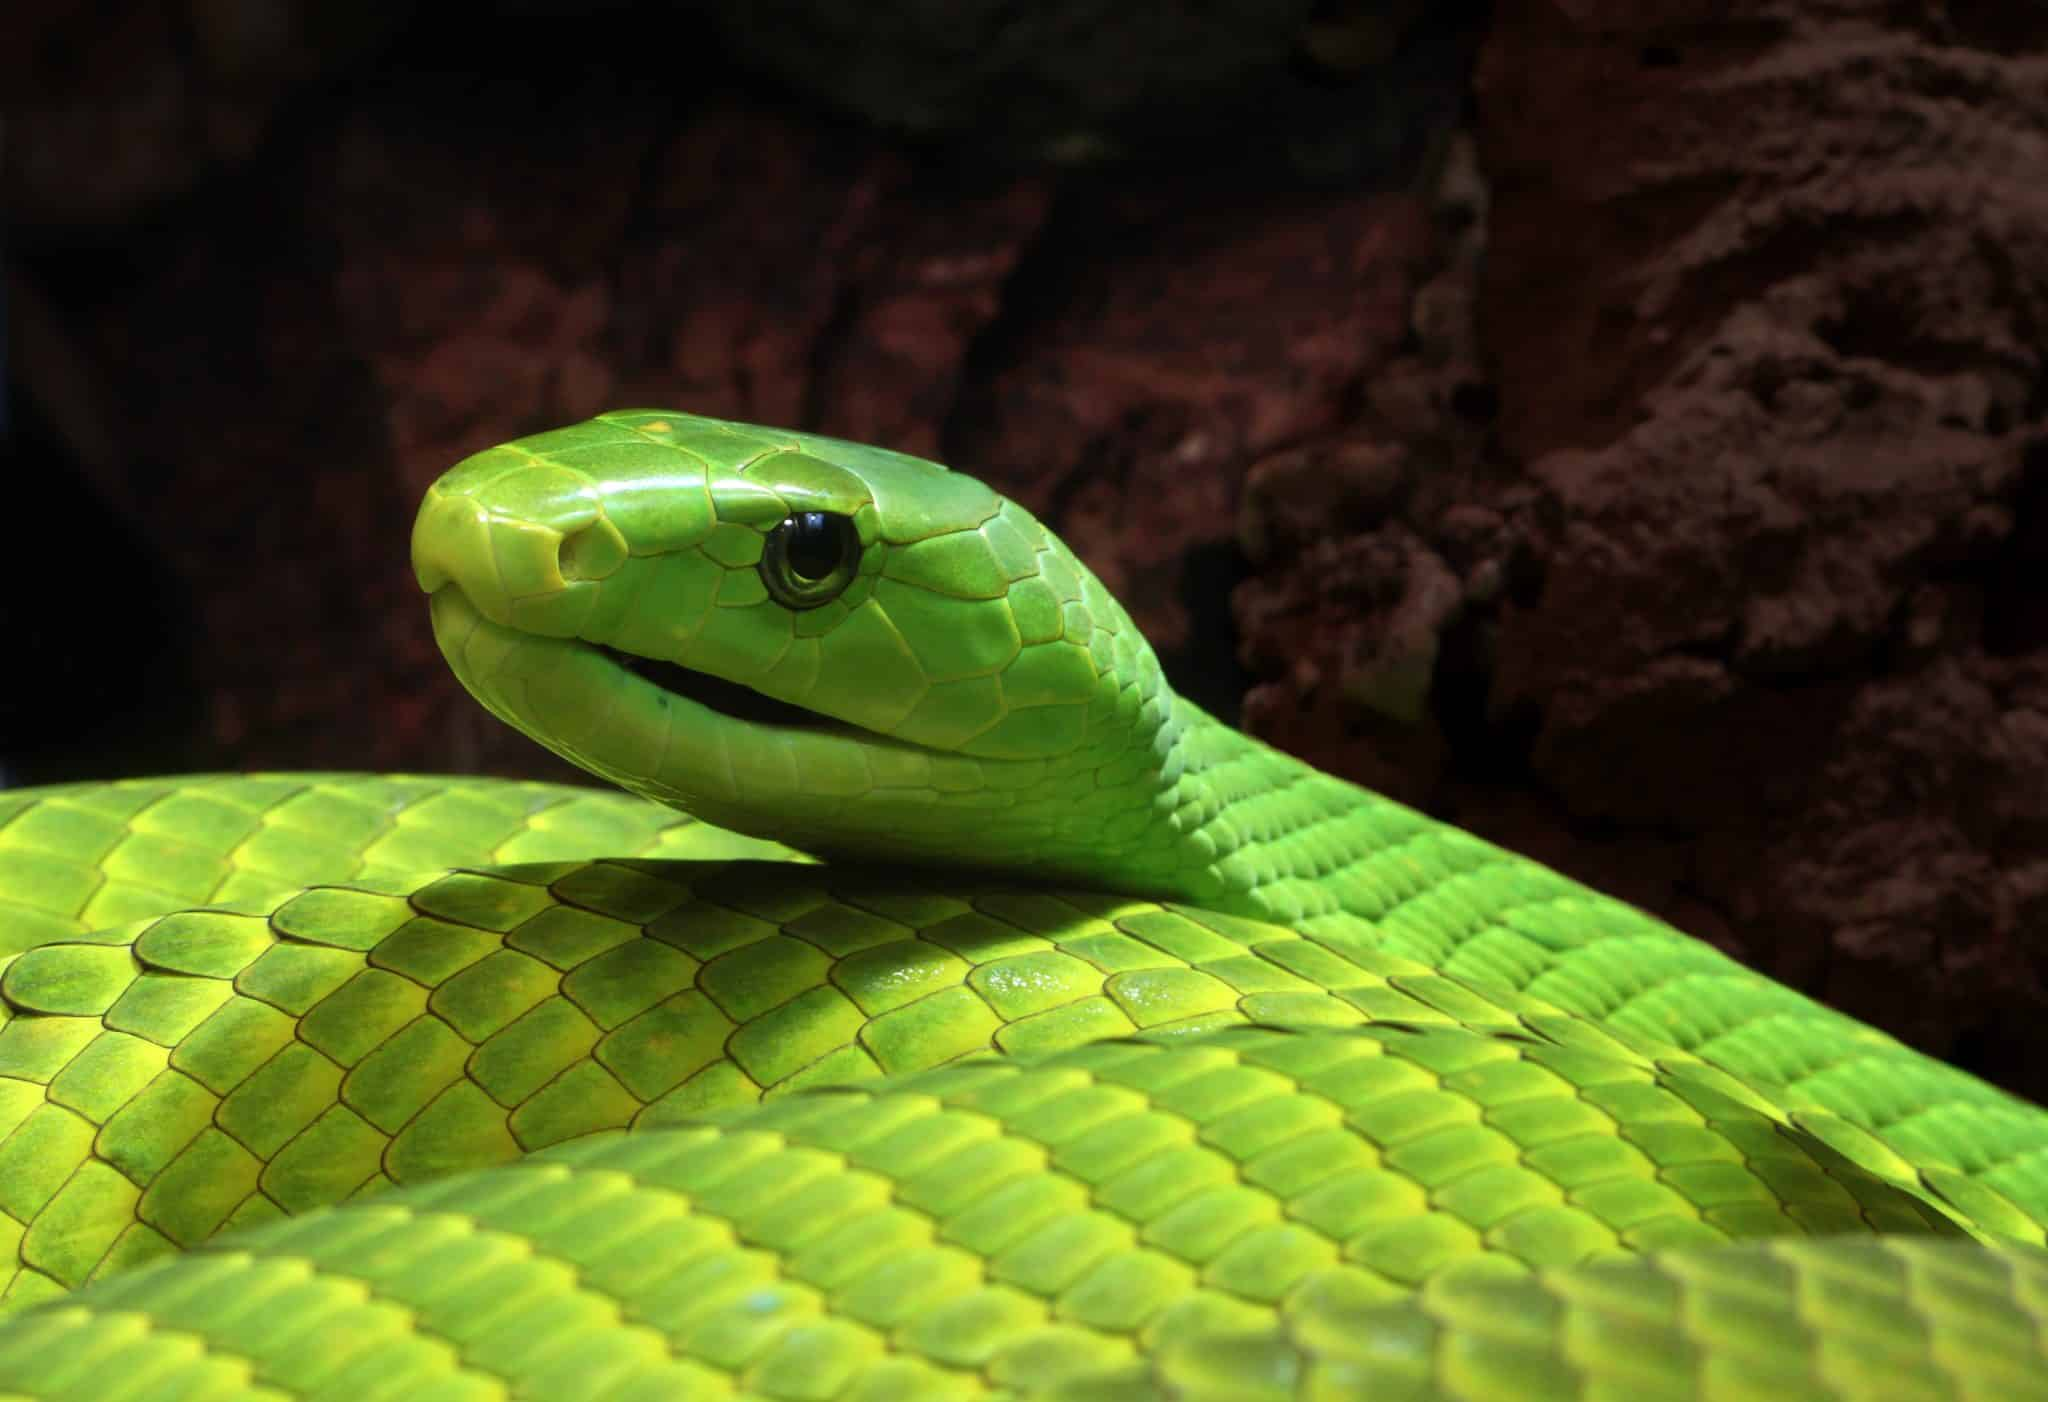 Black and Green Mamba Snake